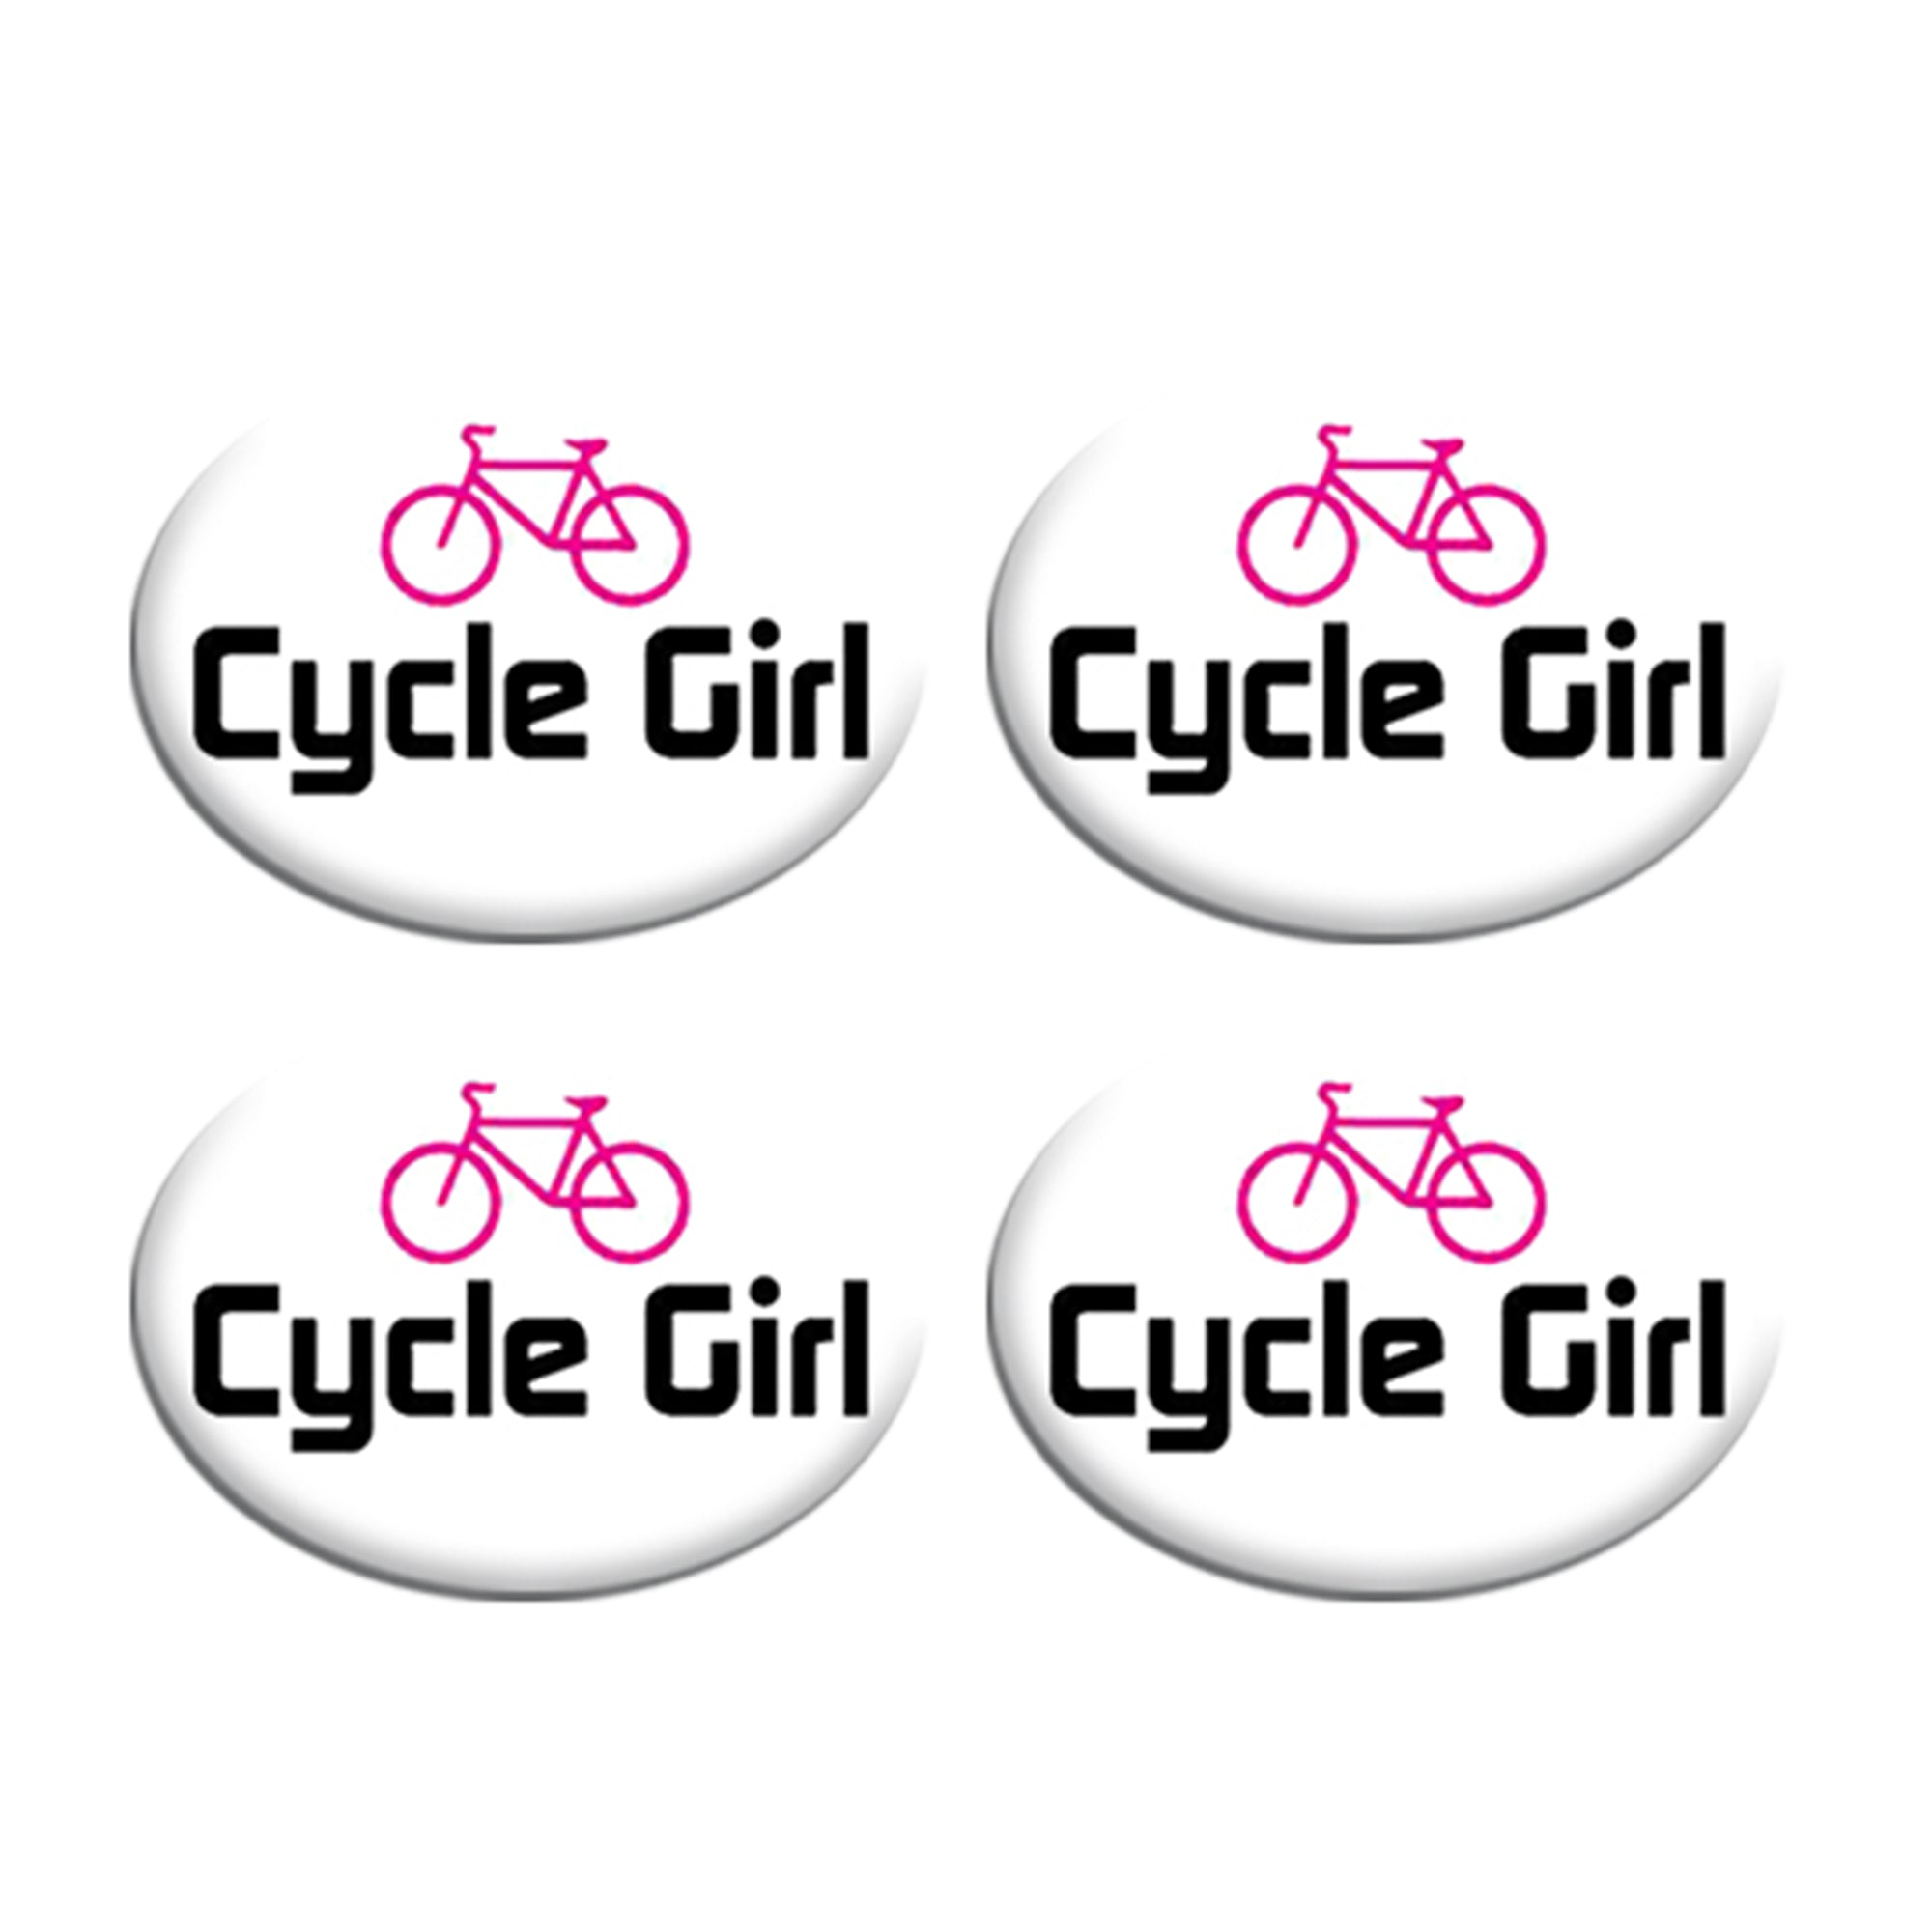 Cycle Girl